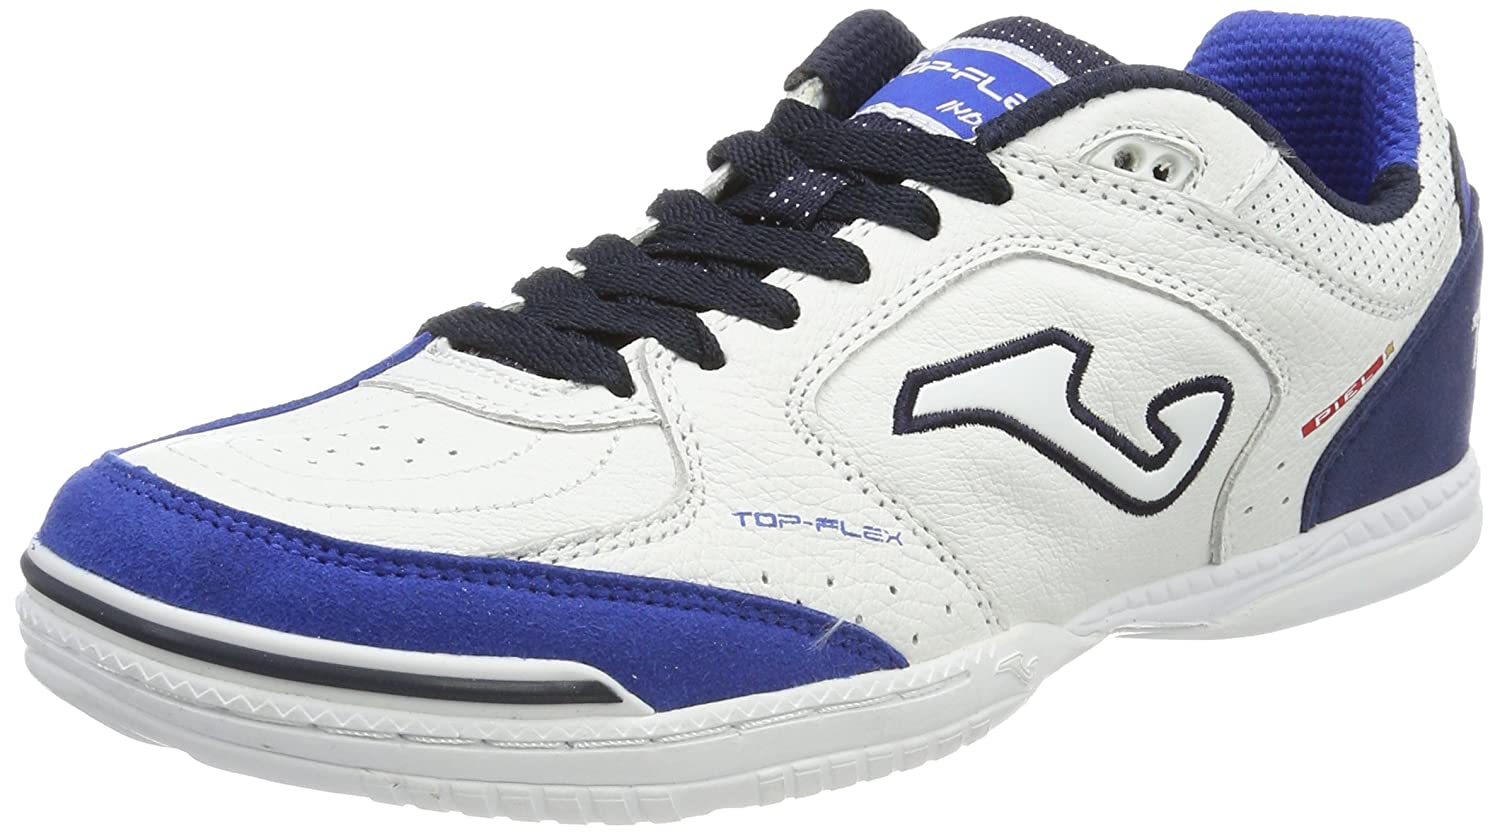 Joma TOP FLEX Indoor Football Shoes - Men s 5-a-Side Shoes  Amazon.co.uk   Shoes   Bags c446652afe7a7